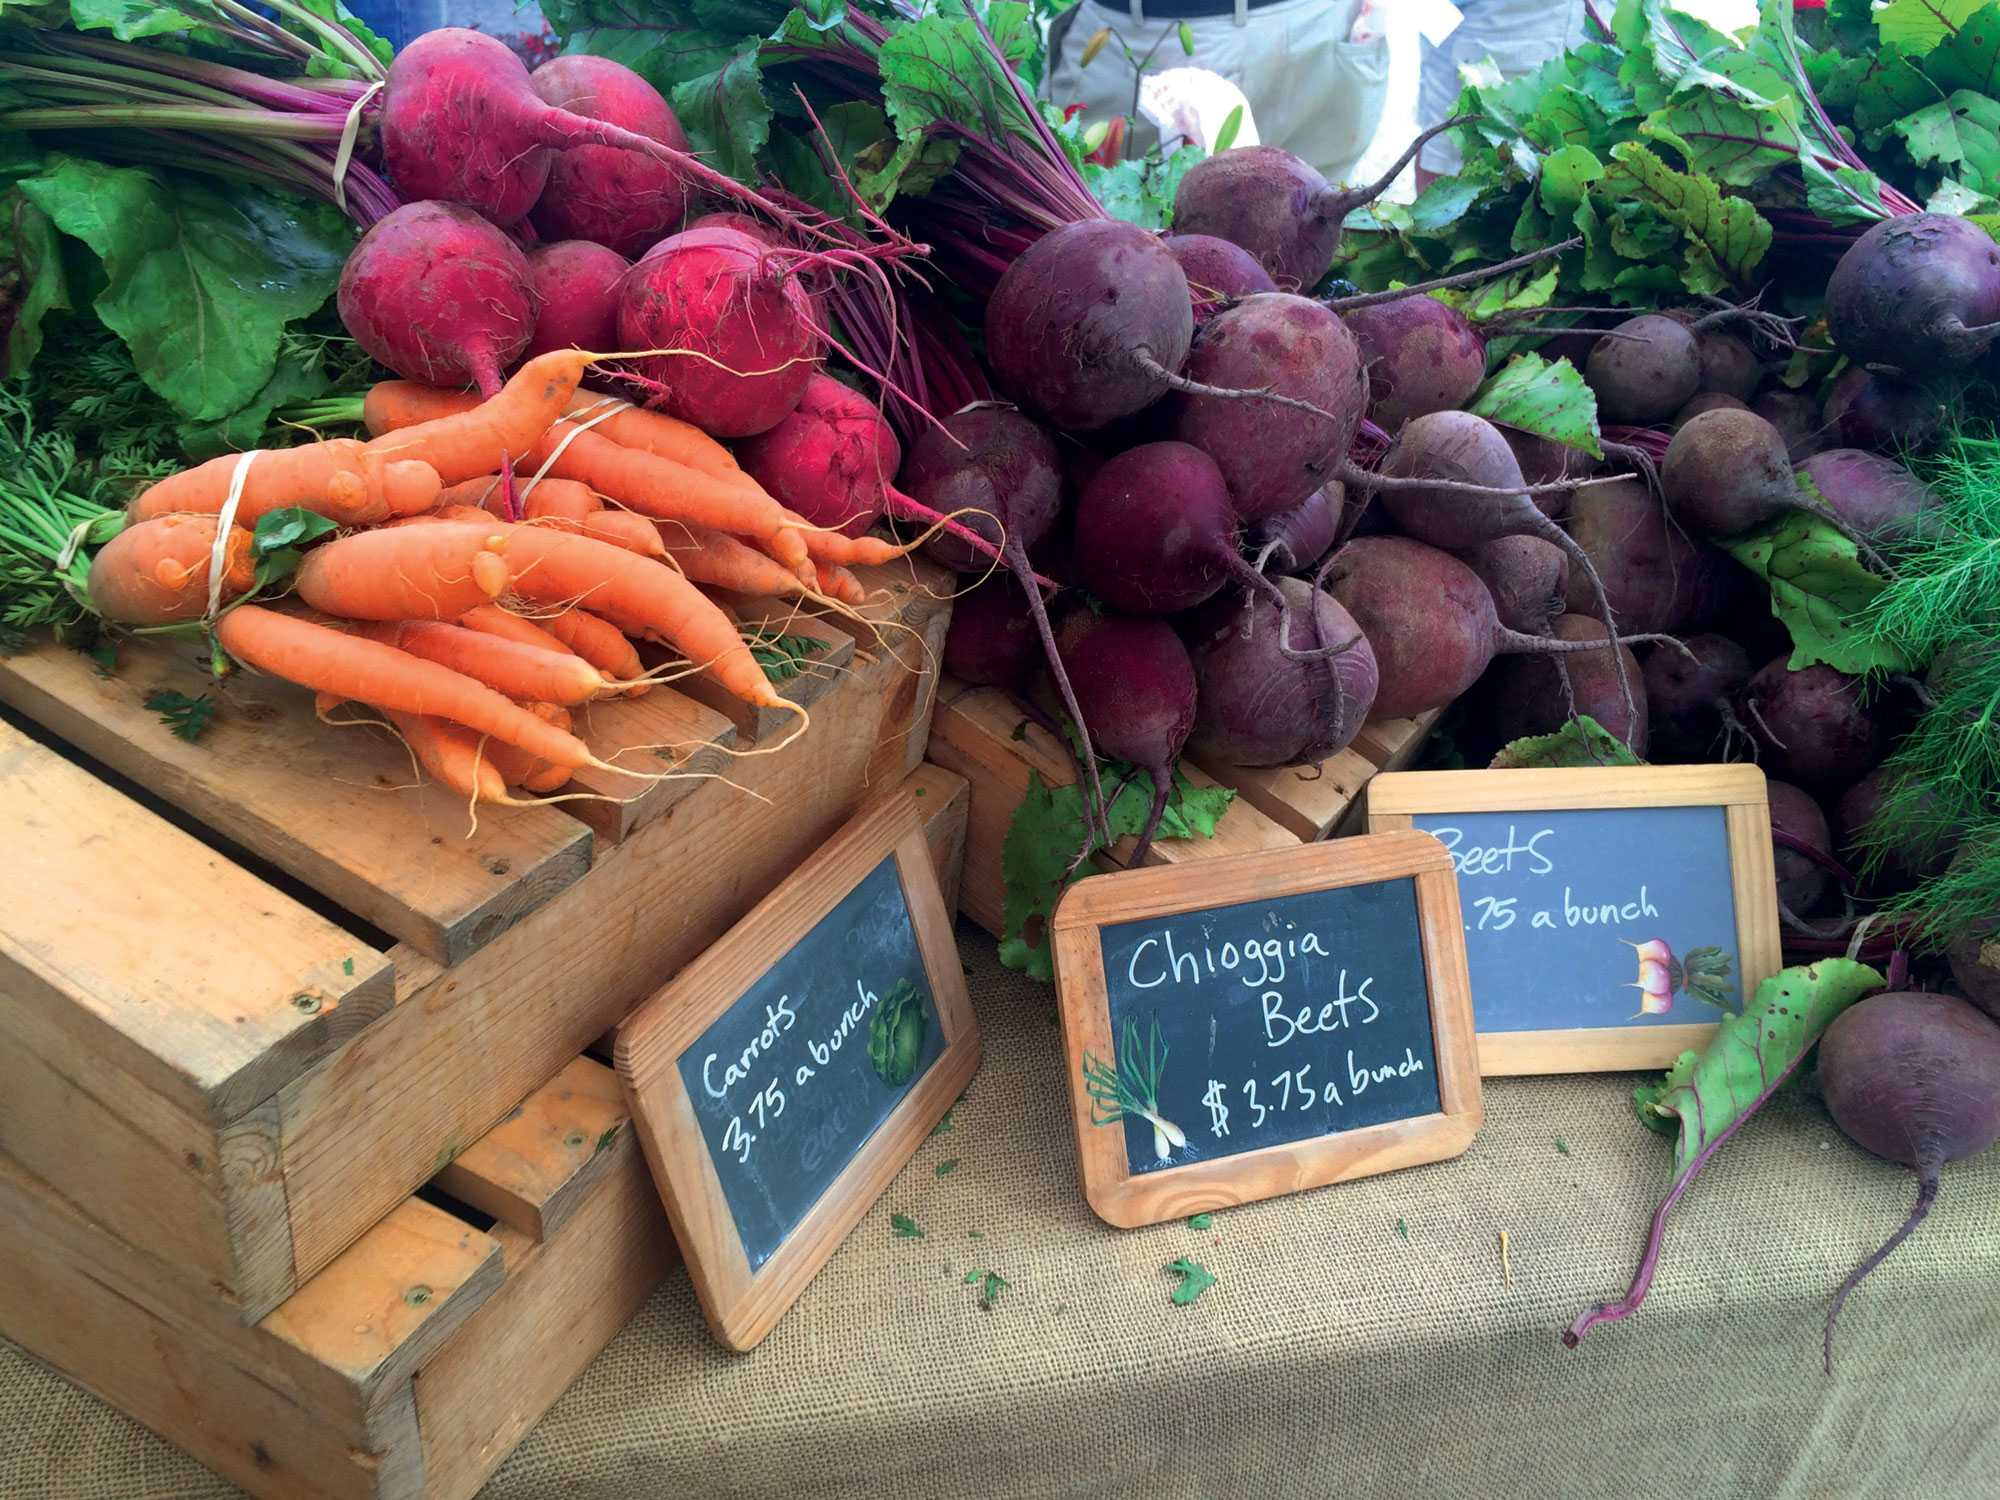 Seasonal+vegetables+for+sale+at+the+Farmer%27s+Market.+dallaslinger